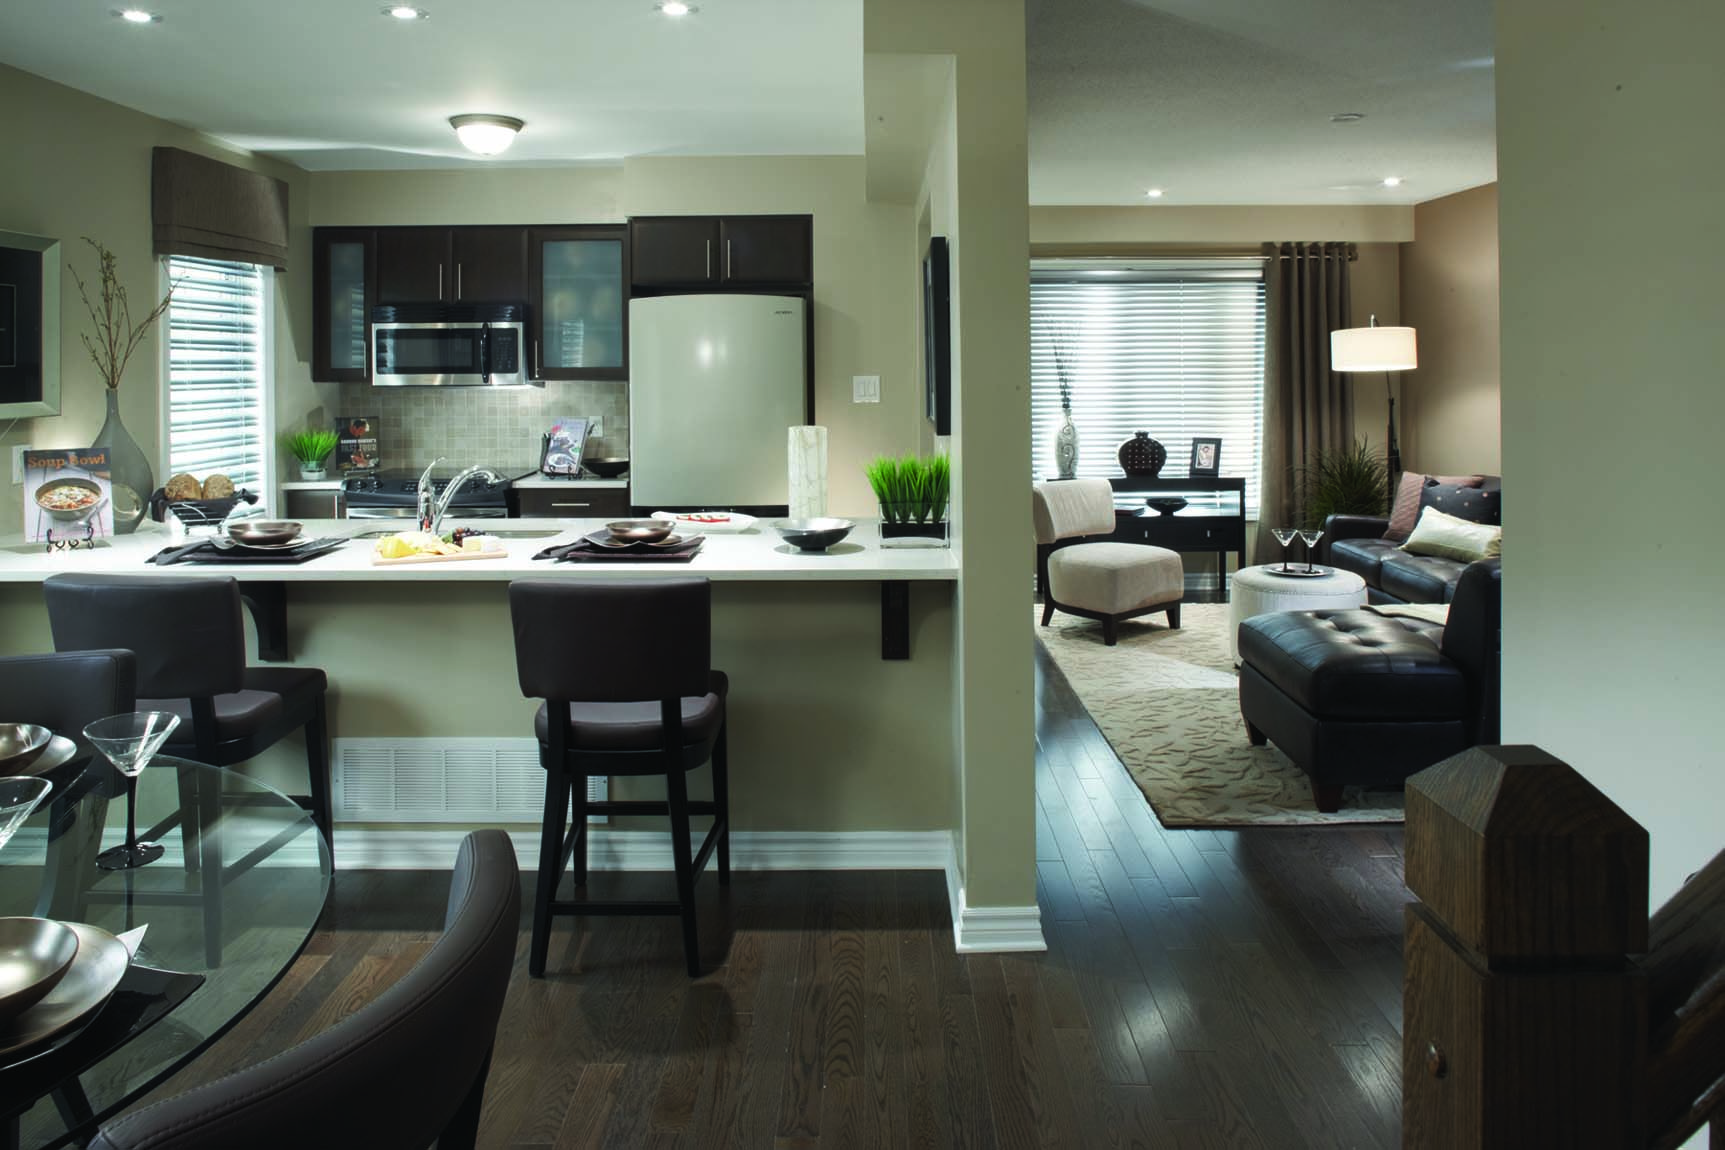 Mattamy Ottawa's Mulberry Corner model. Model homes